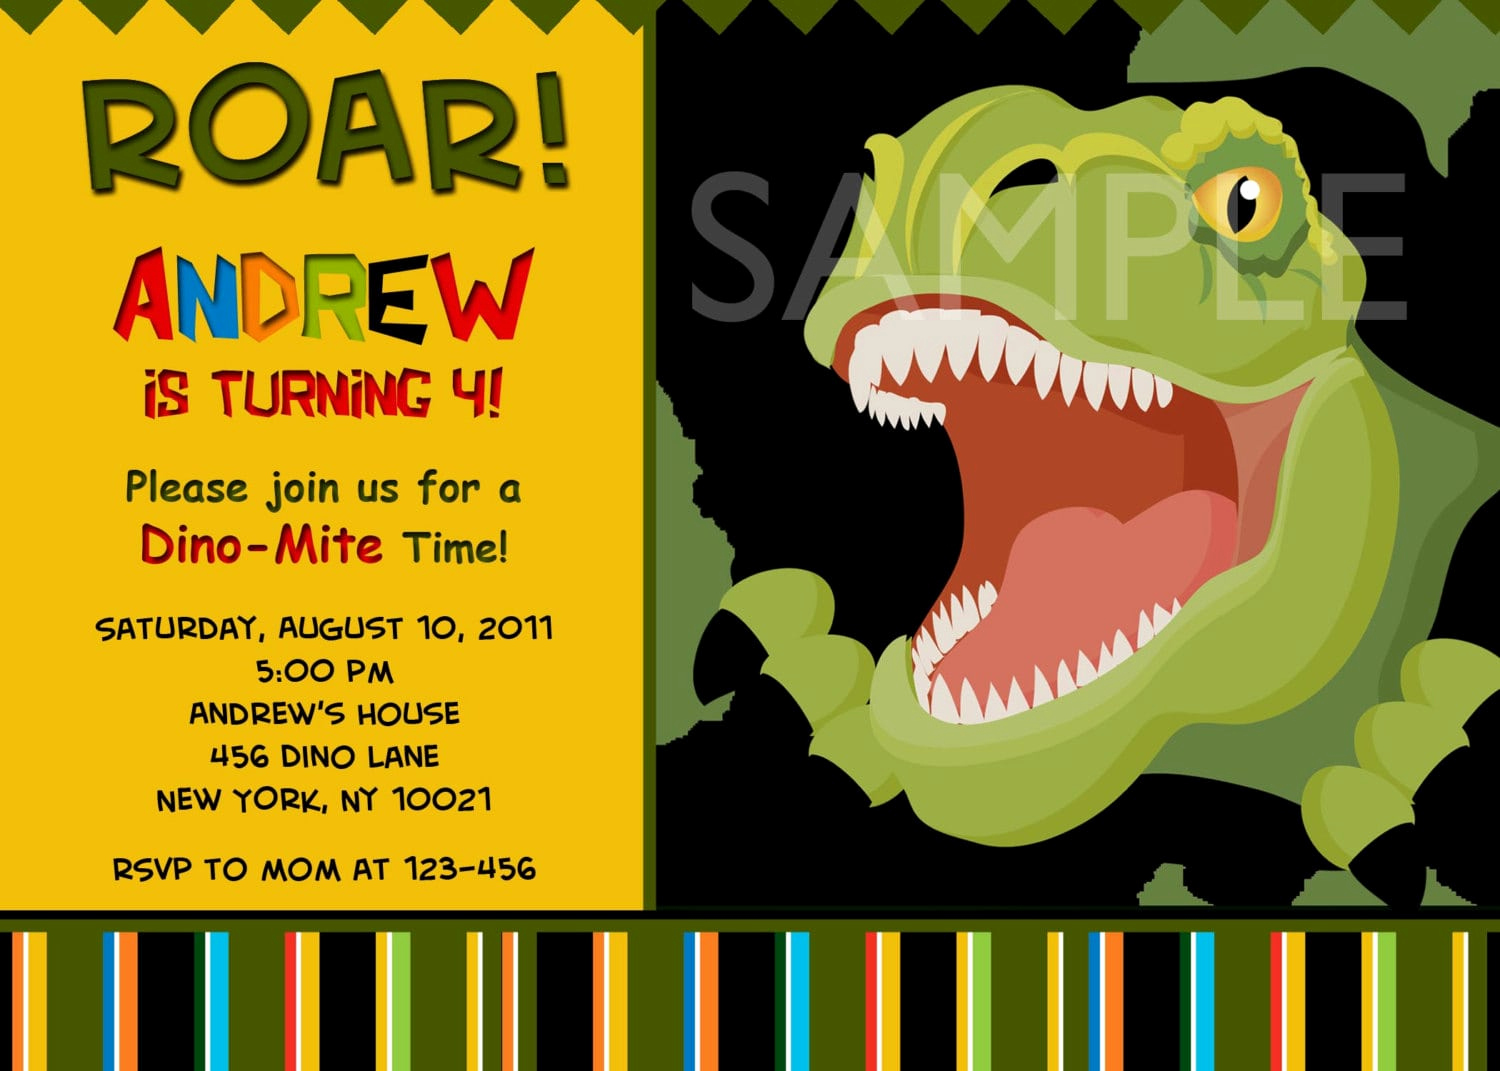 Dinosaur Birthday Invitation Template Beautiful Free Dinosaur Invitation